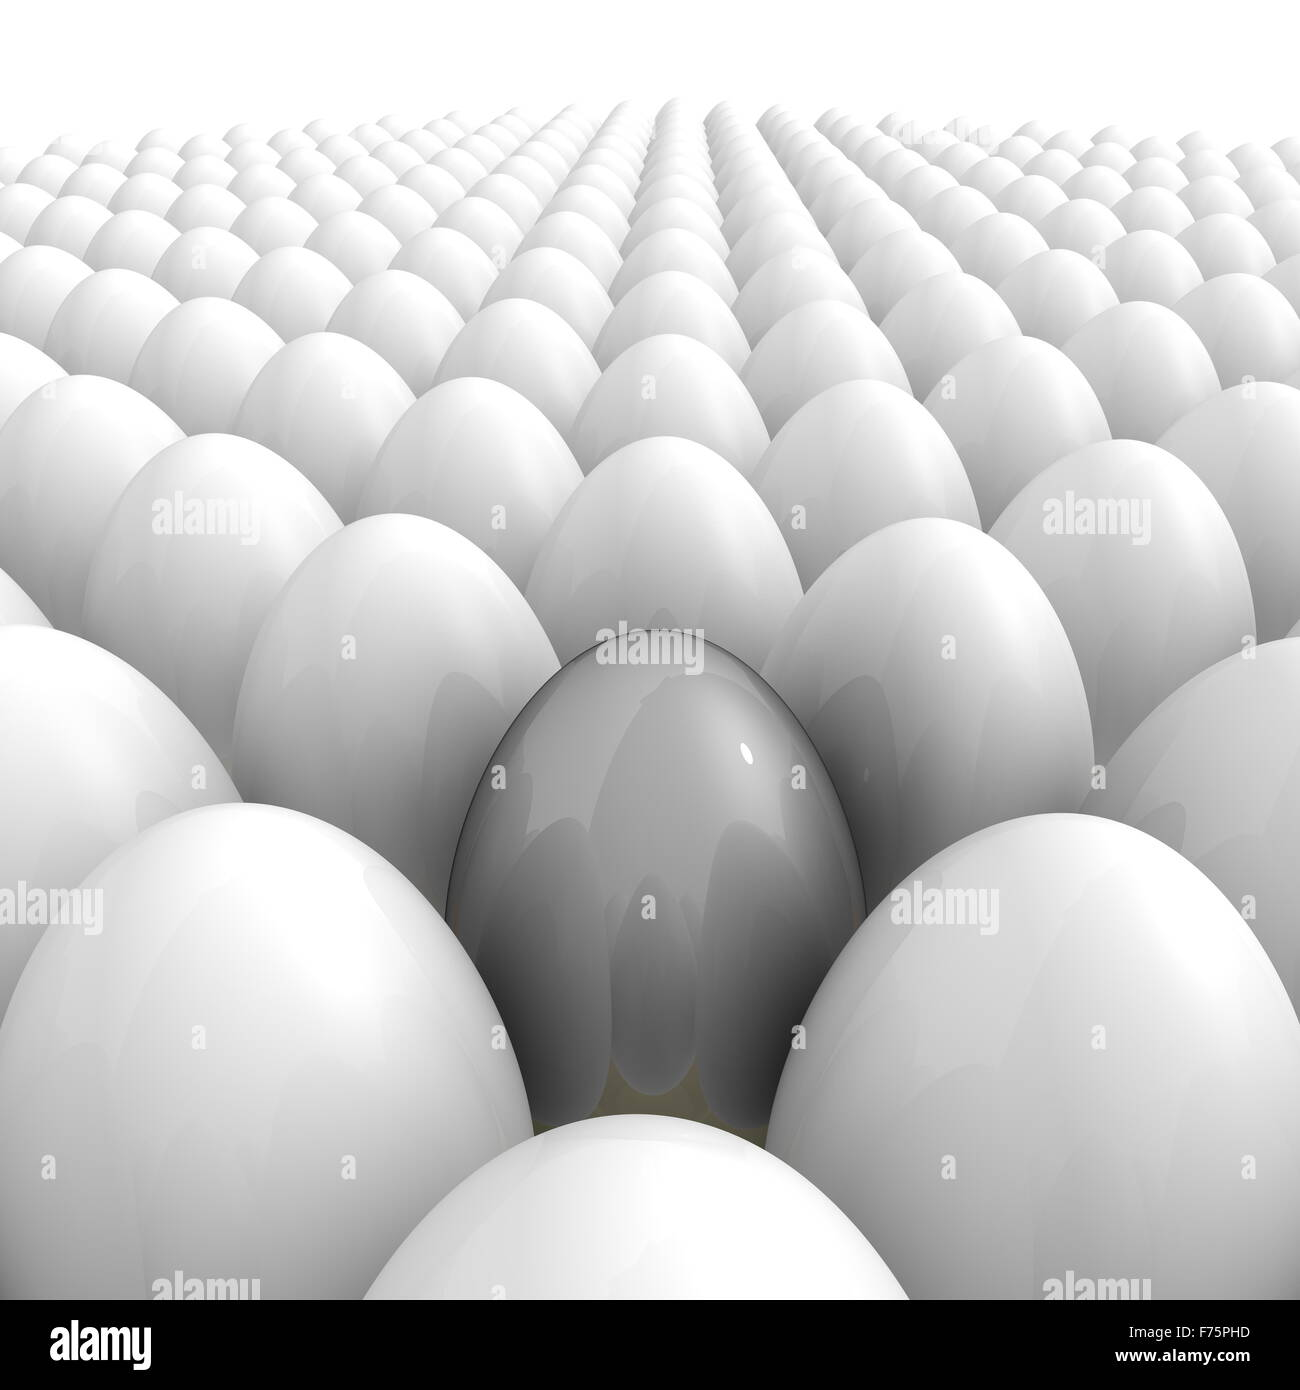 Eggs All Over - And a Single Grey One - Stock Image